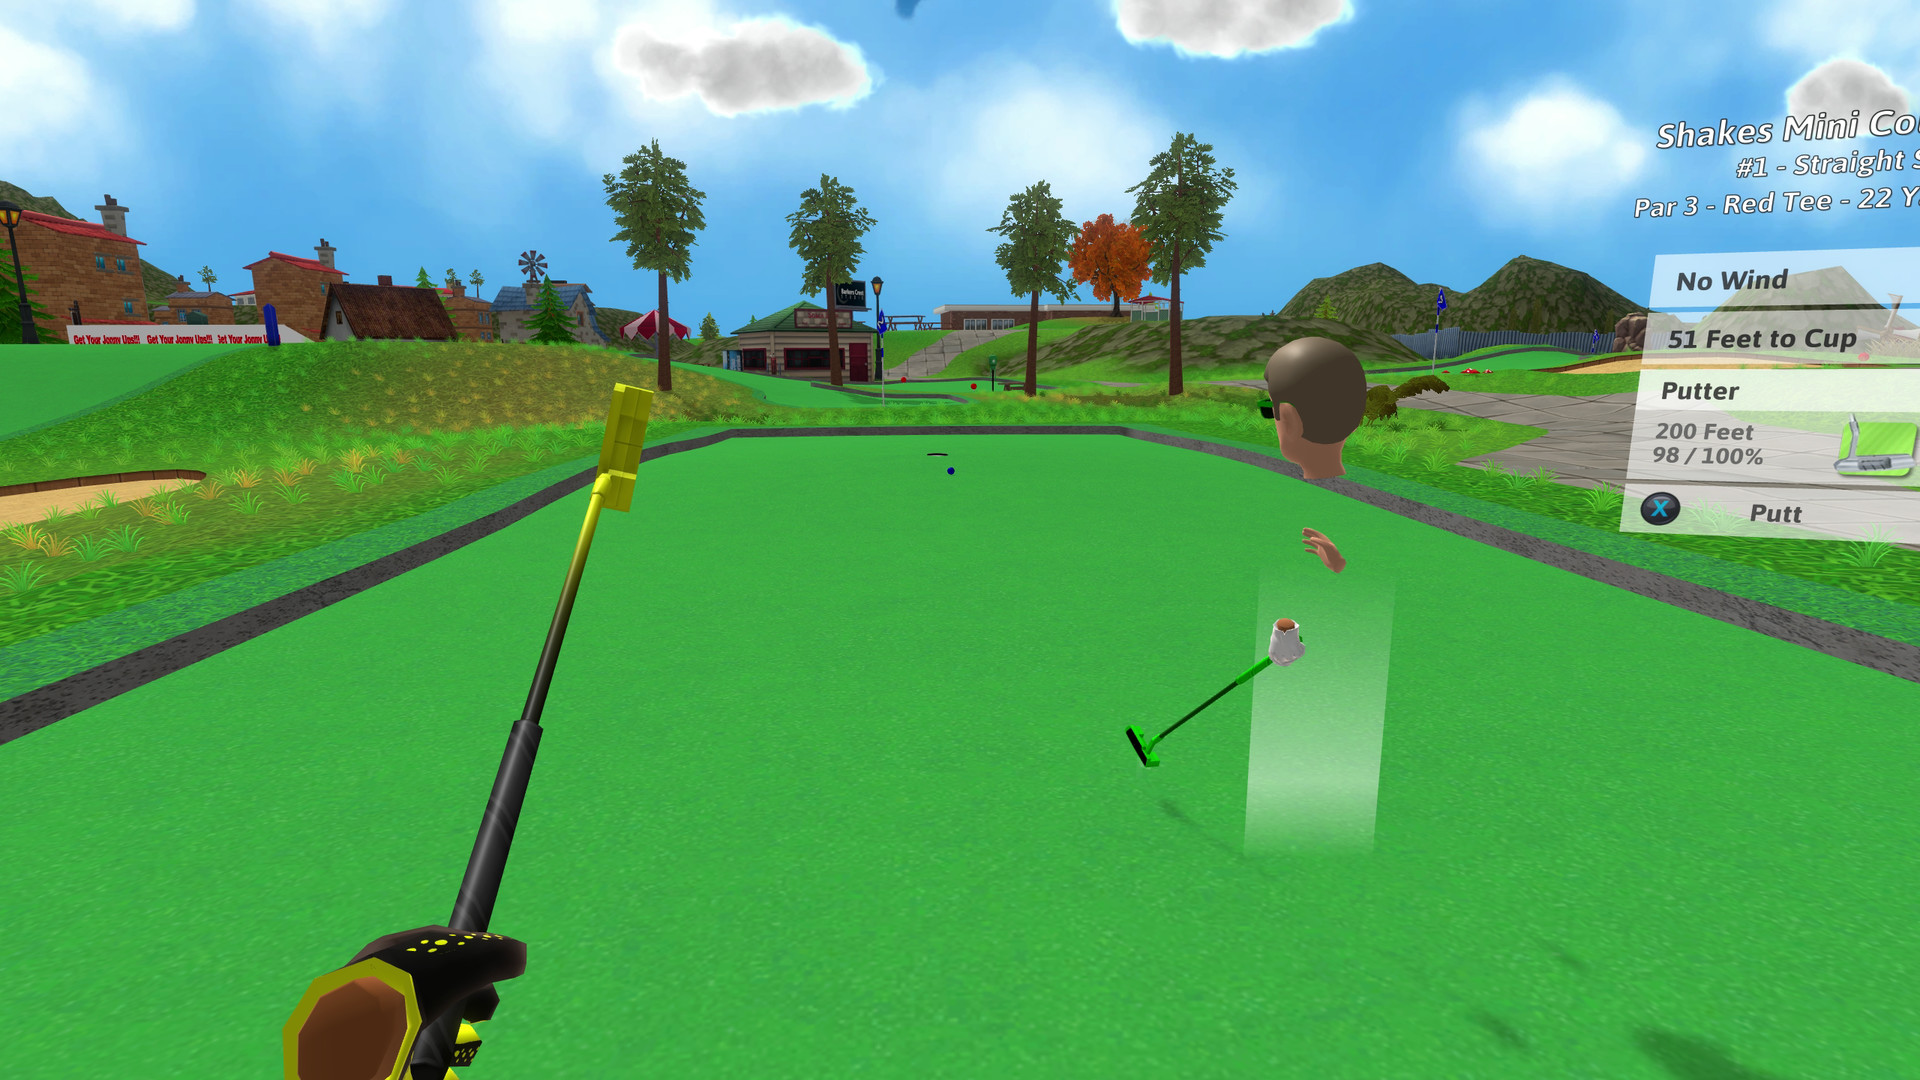 Tee Time Golf on Steam Golf Hole Sign Ideas Html on golf outing signs, funny golf signs, golf shot glasses, golf cart signs, golf flag, golf themed bar, vintage metal golf signs, golf sponsorship signs, golf tee signs, golf lessons sign, mini golf warning signs, wooden golf signs, golf course signs, custom golf signs, golf tournament signs, golf signs home decor, golf banners, golf driving range, golf score card, golf plaques and signs,